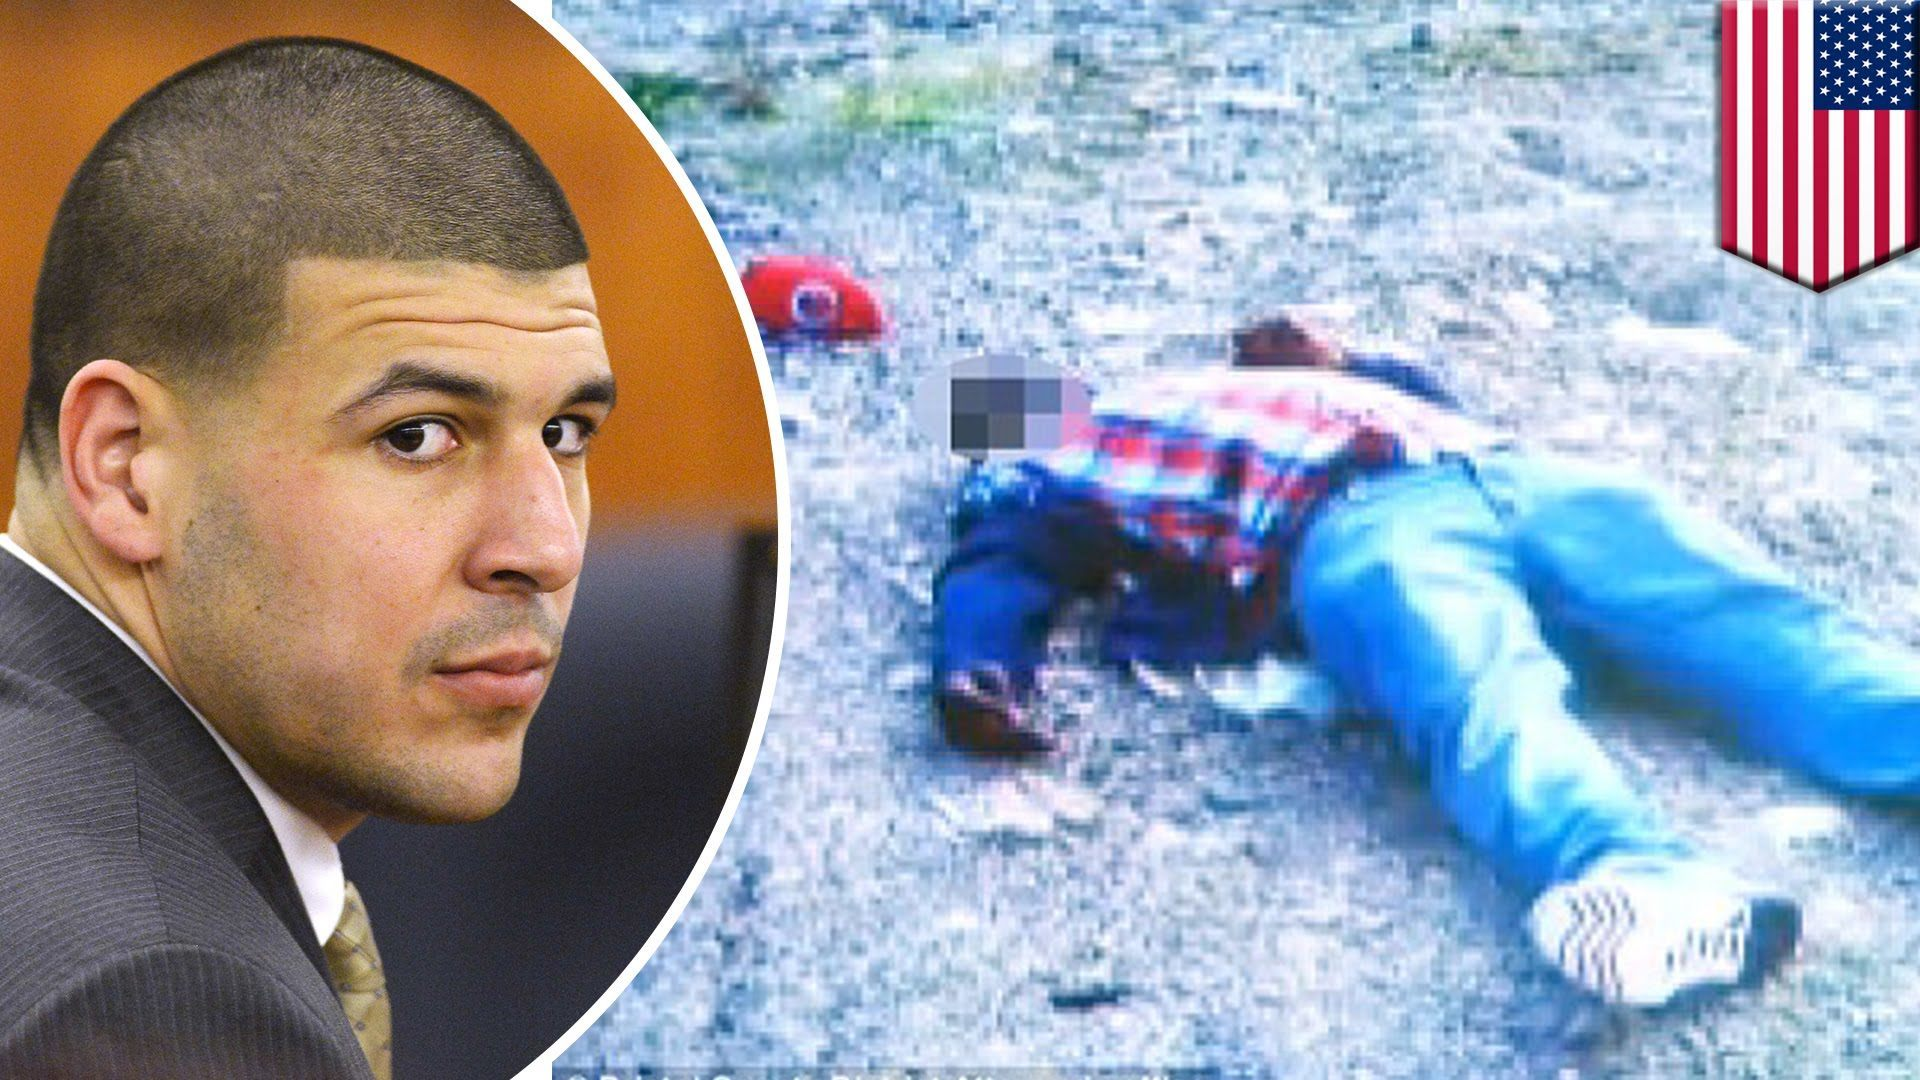 aaron hernandez worst sports role models 2015 images